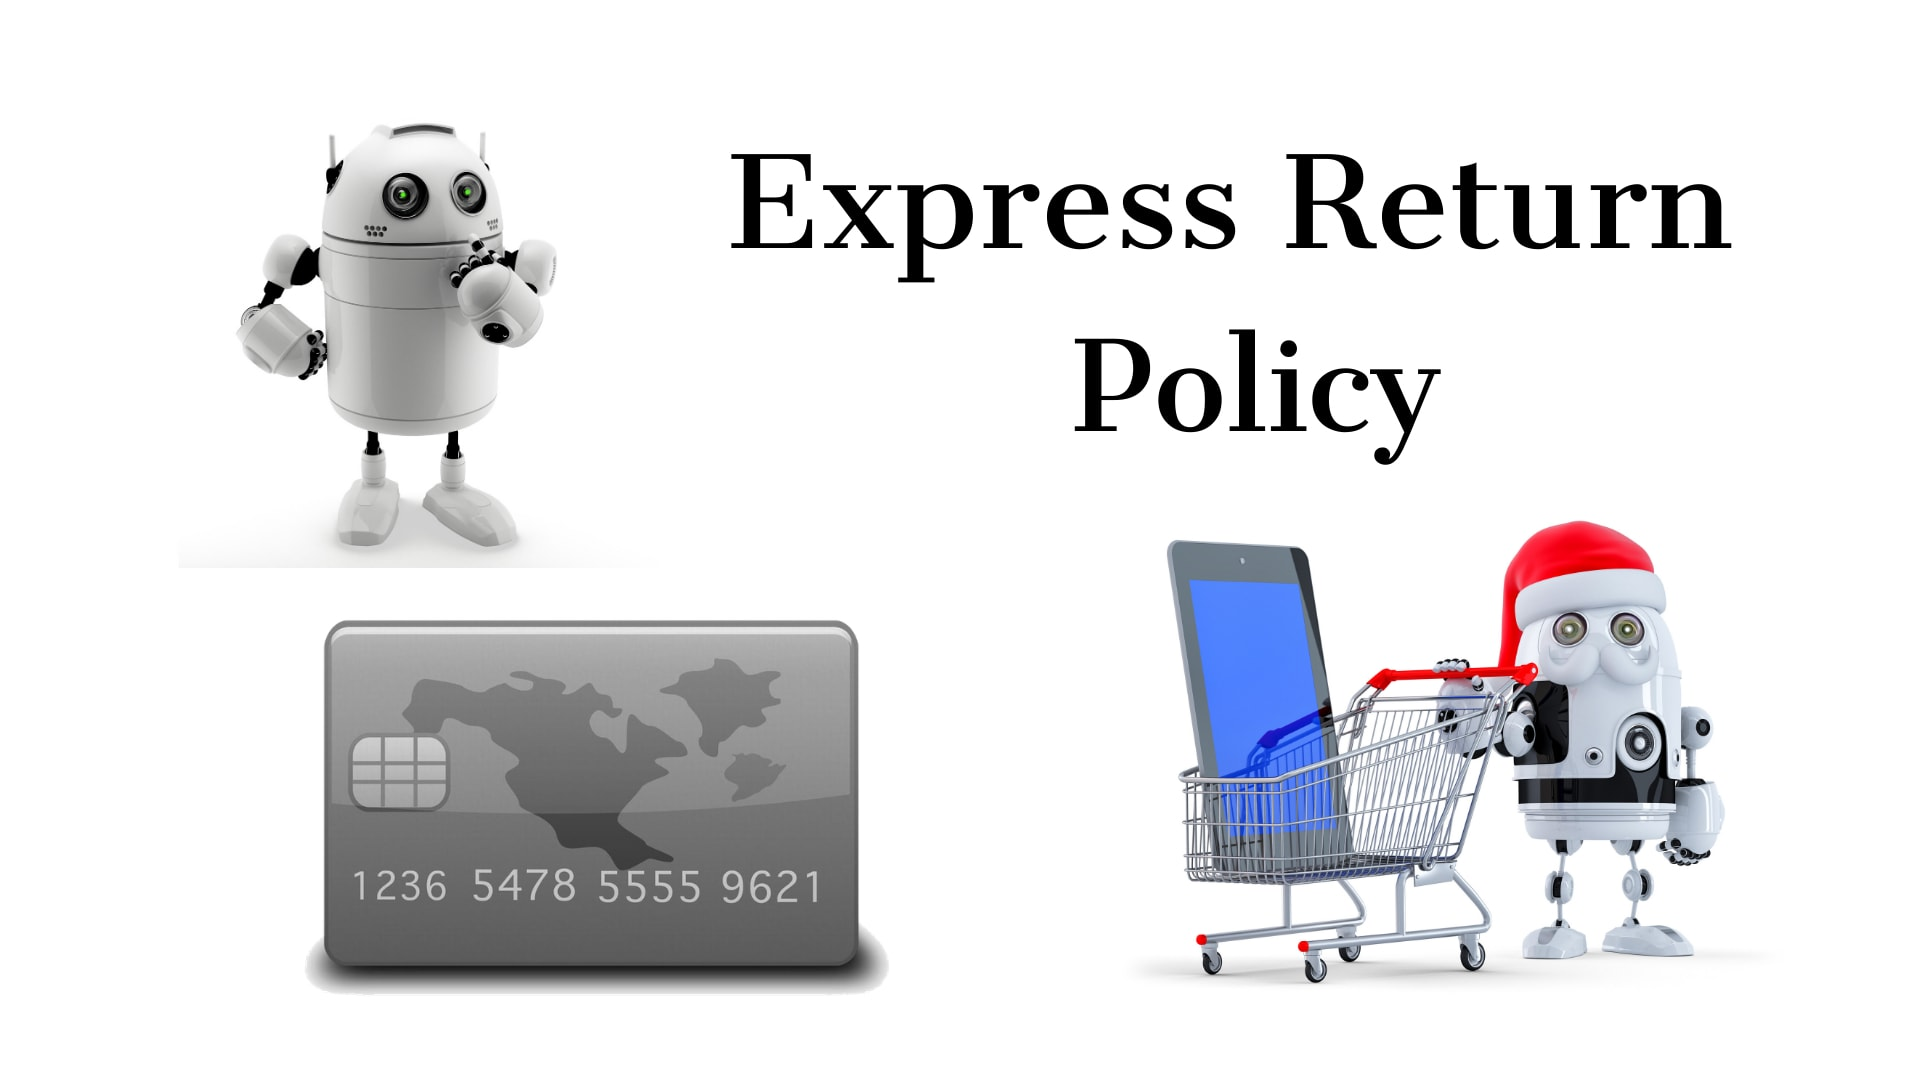 Express Return Policy - Express Return and Refund Policies [May 2020 Update]